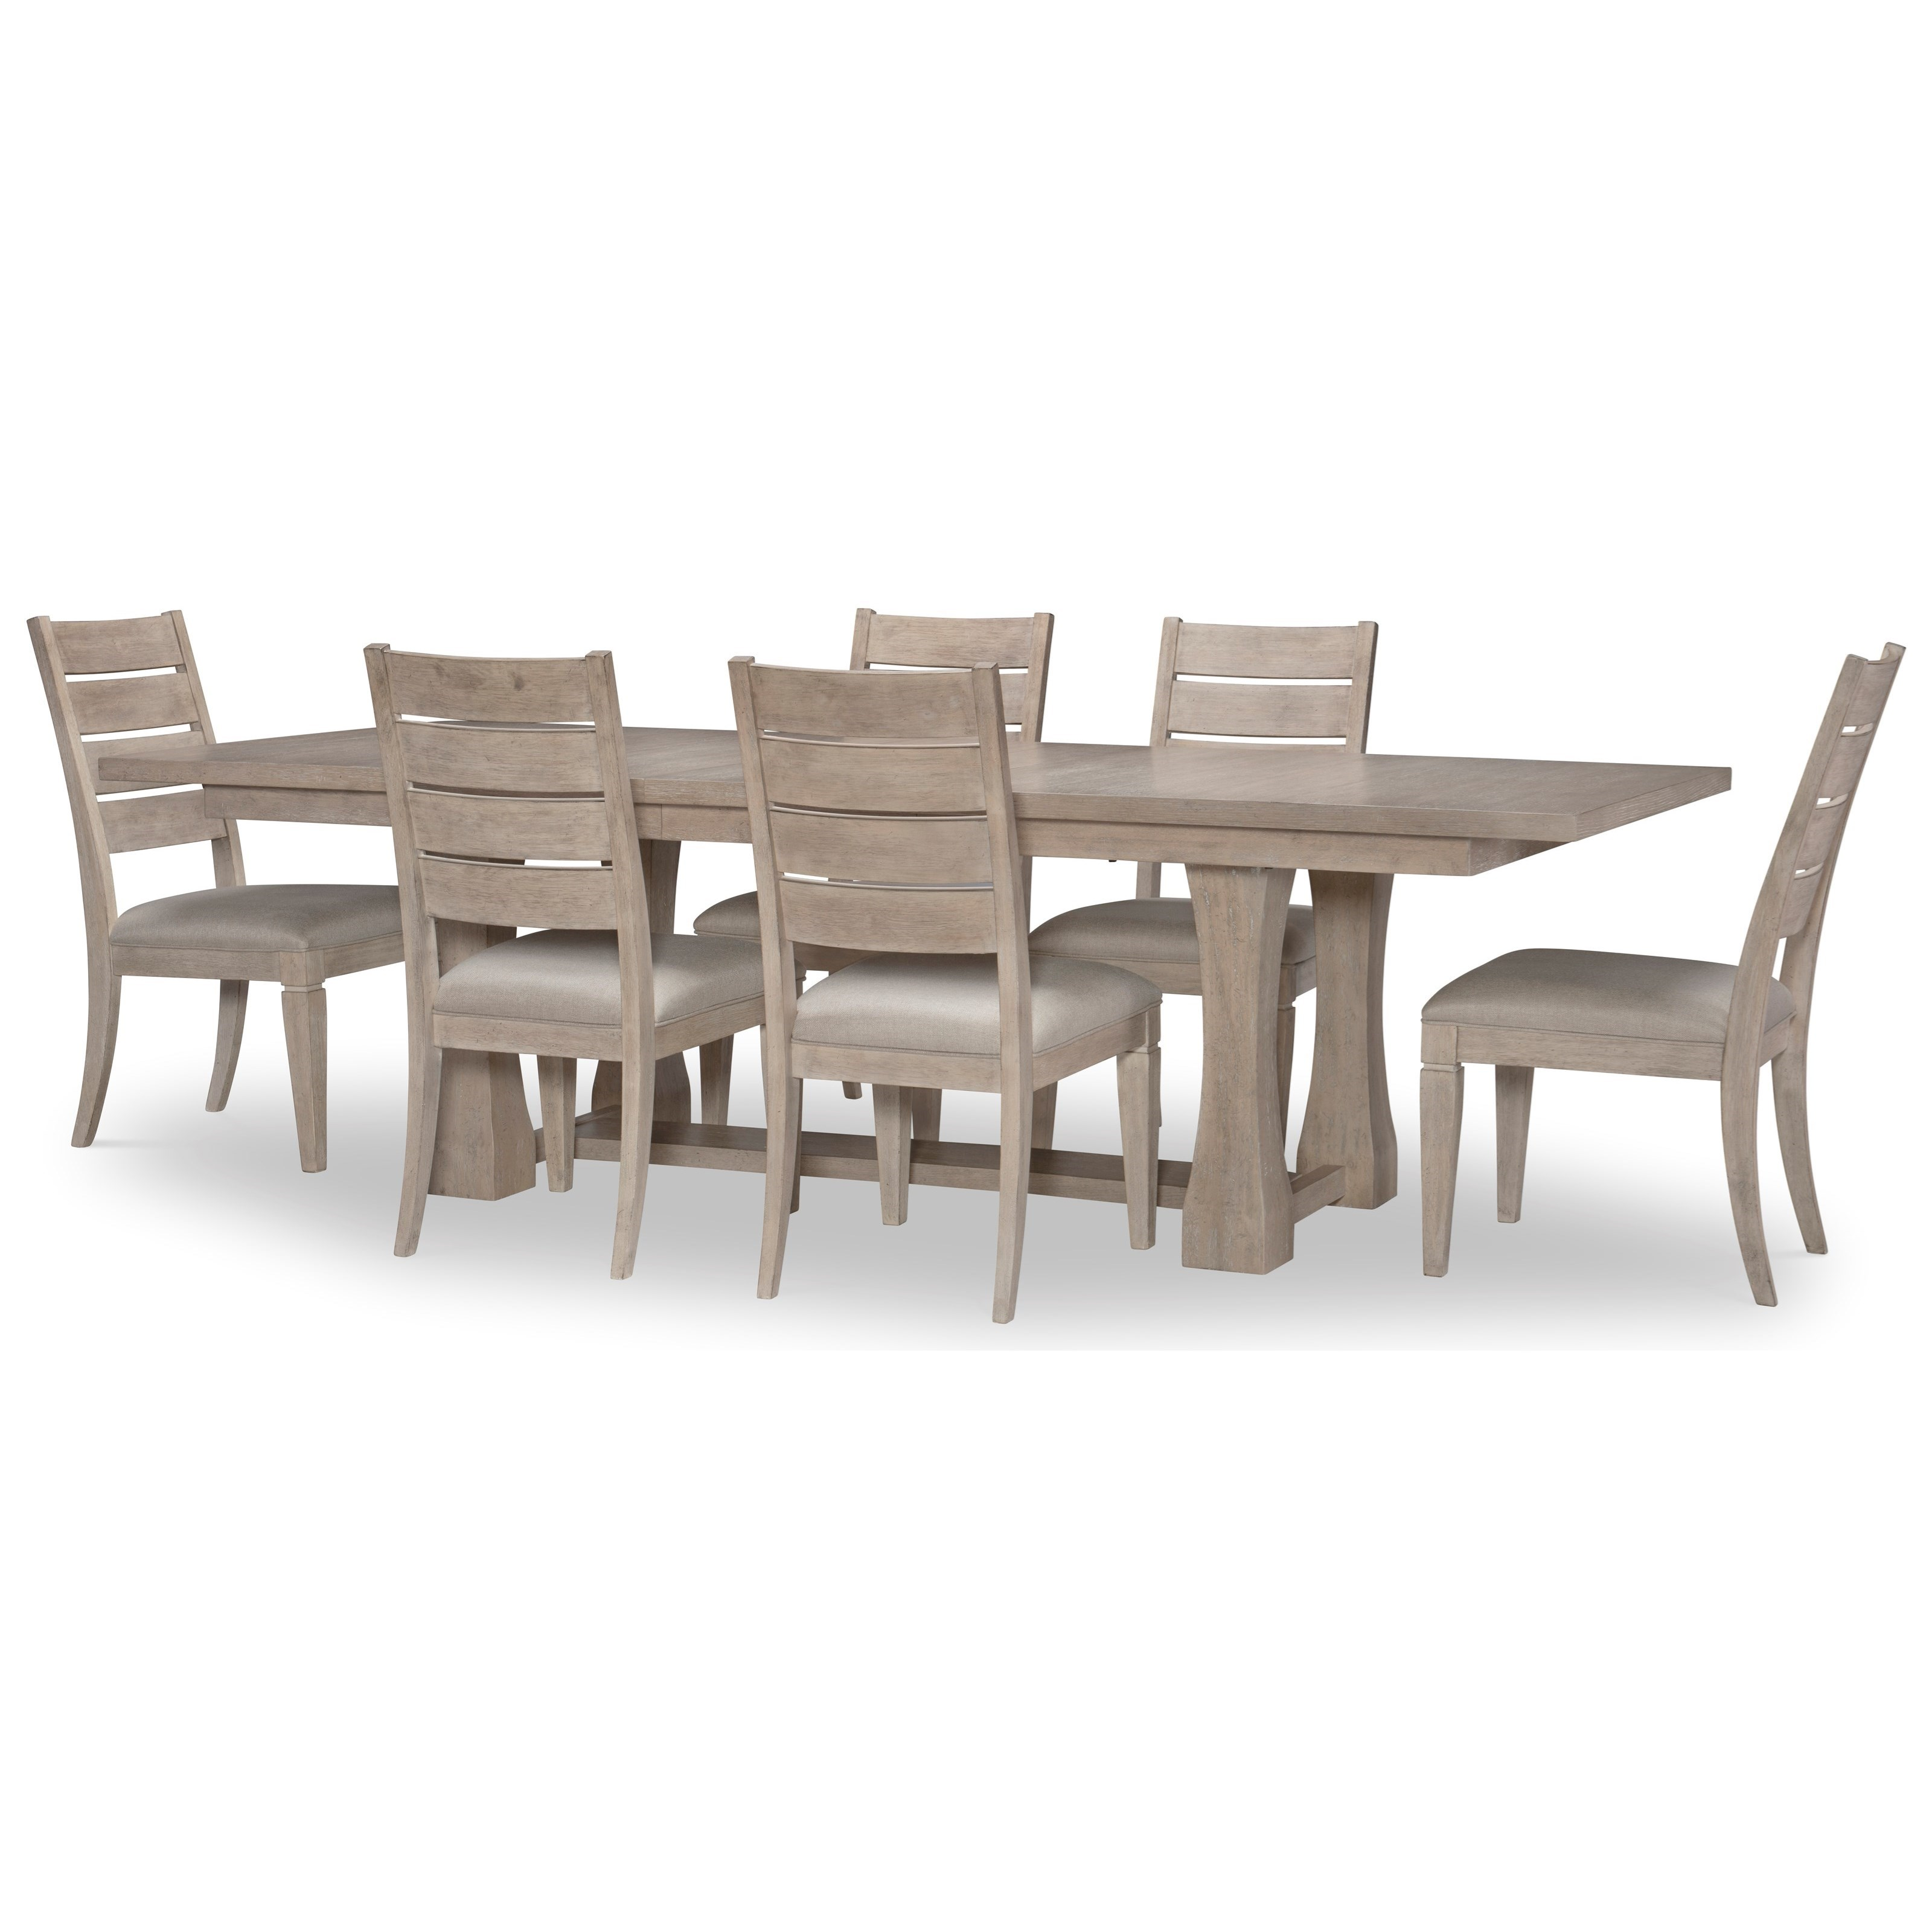 Milano 7-Piece Table and Chair Set at Sadler's Home Furnishings